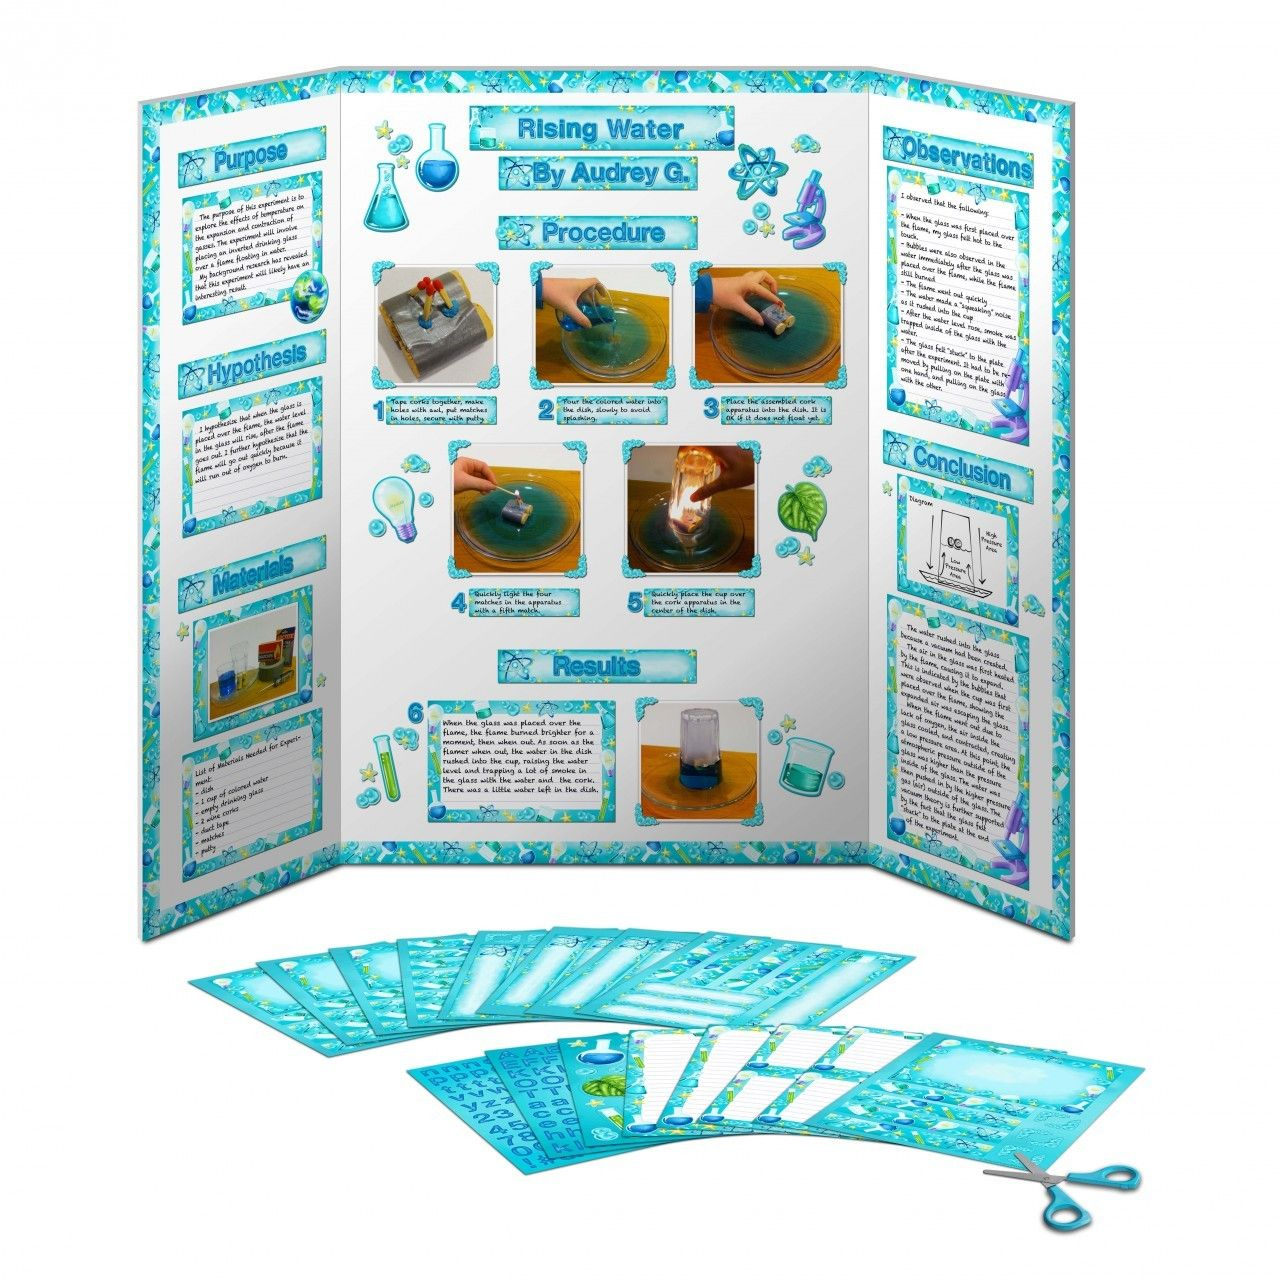 Poster design ideas for school projects - Printable To Decorate Science Fair Display Boards Everything You Need To Make A Poster